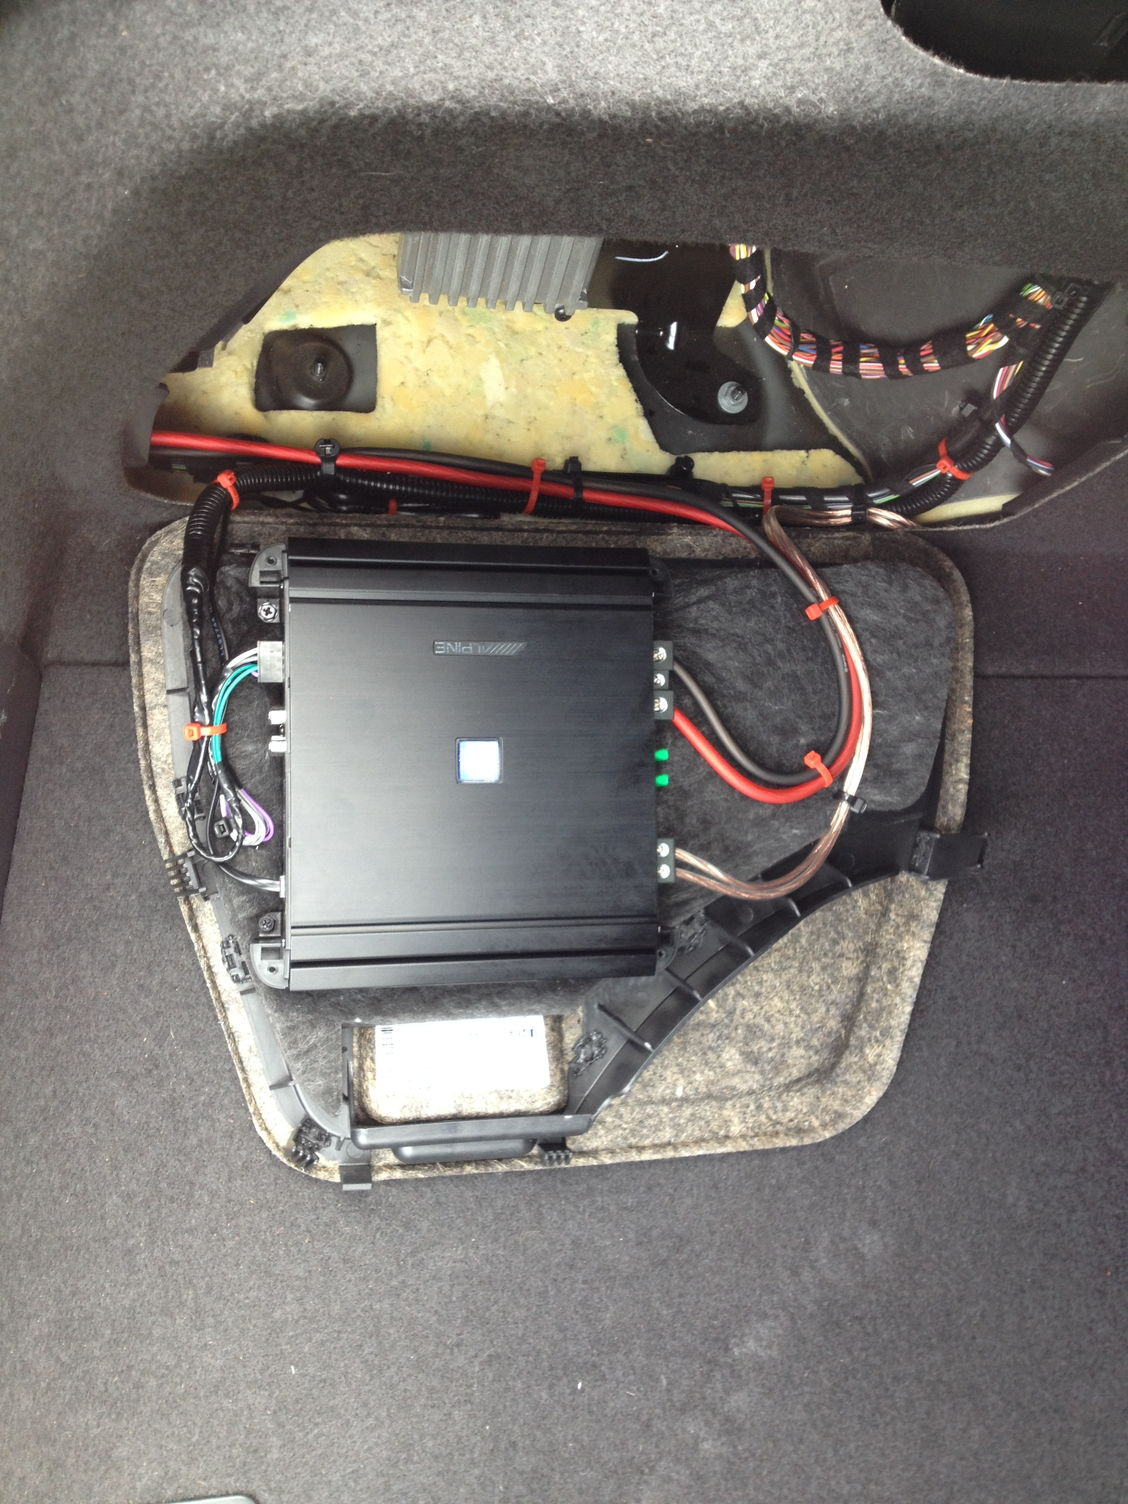 2014 S4 Non B&O Aftermarket Subwoofer and Amp Install - AudiWorld Forums